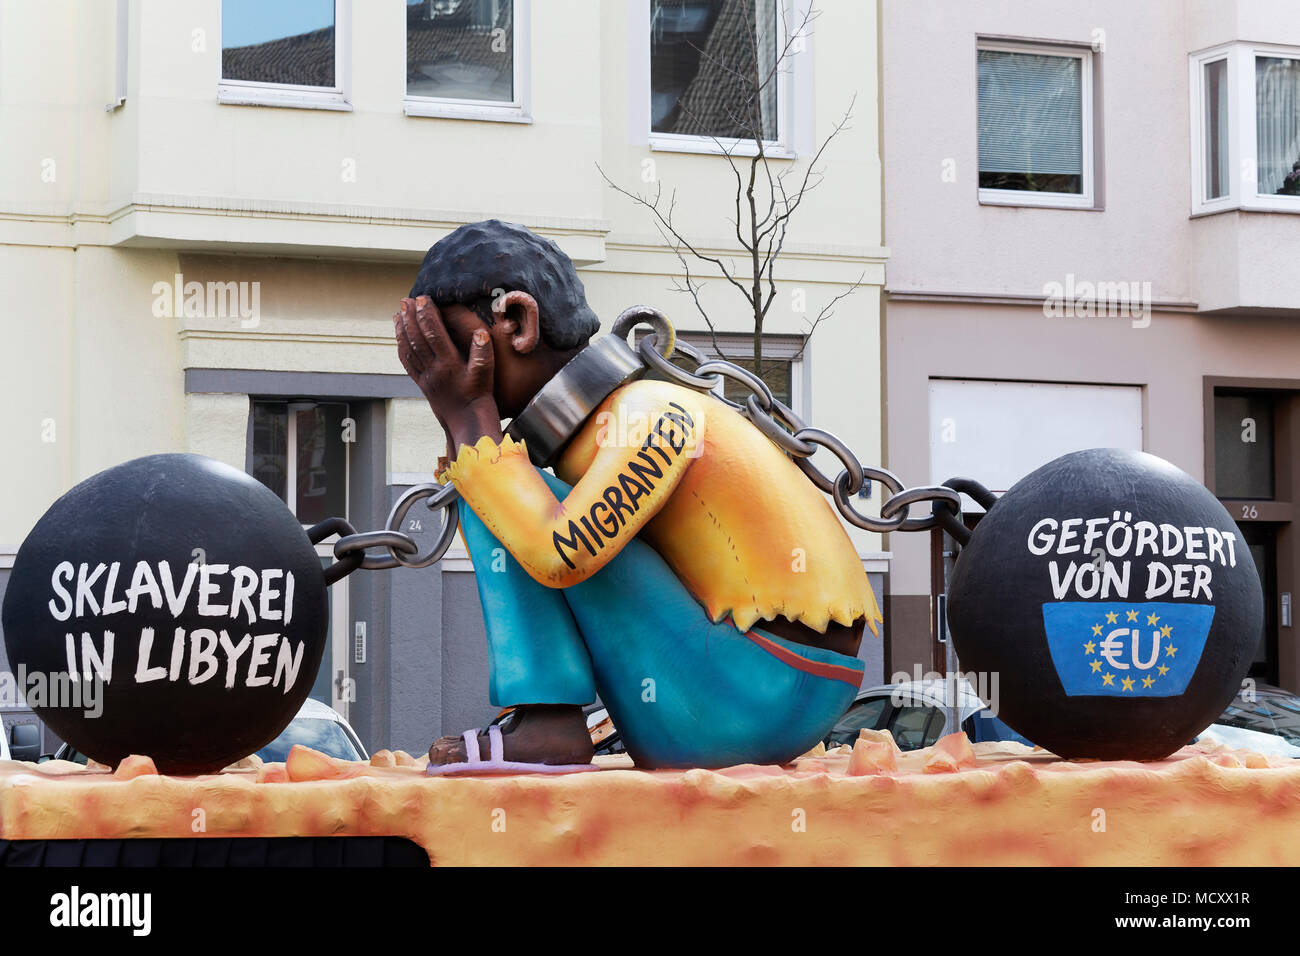 Migrant from Africa, double chained, slavery sponsored by the EU, political caricature, motto caravan during Carnival Monday - Stock Image